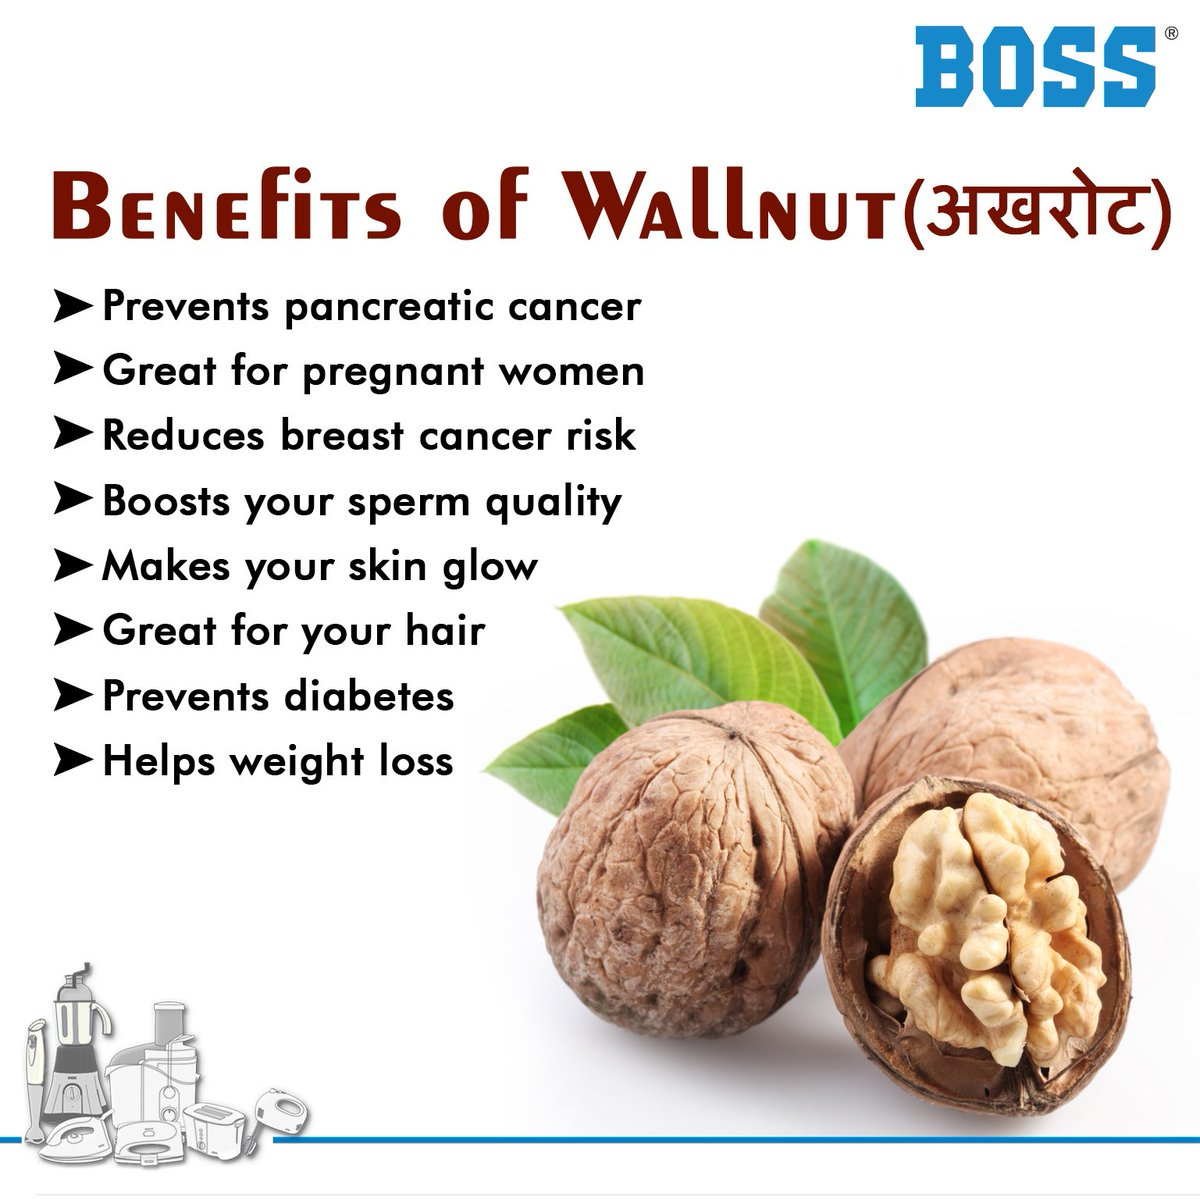 The benefits of walnuts 86